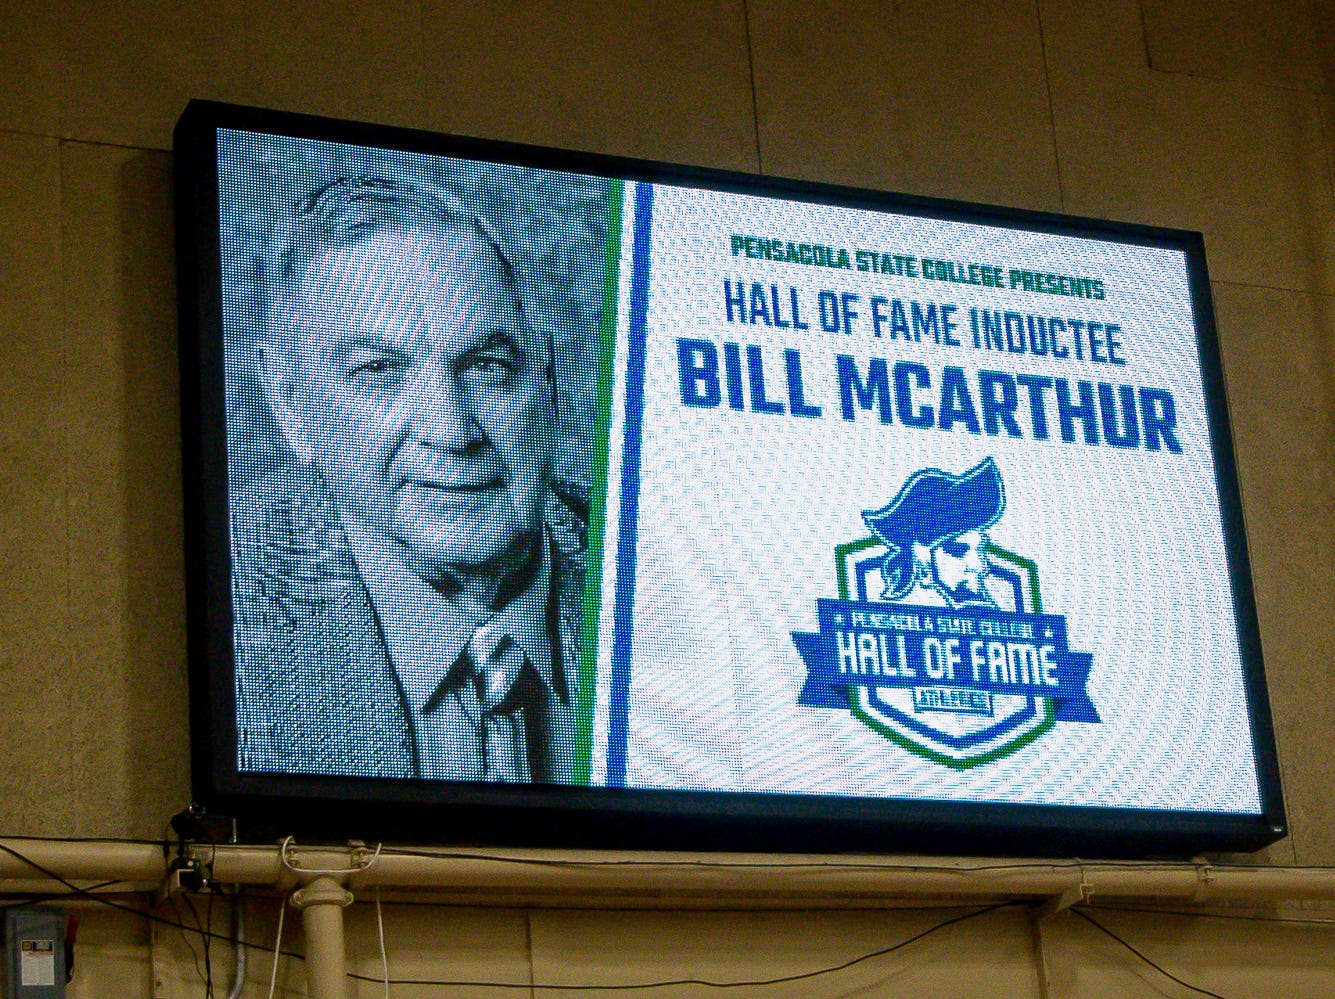 Bill McArthur is posthumously inducted into Pensacola State College's inaugural Athletics Hall of Fame induction ceremony on Saturday, February 16, 2019, in the Hartsell Arena on the main campus. He graduated from the college in 1953 and also was inducted into the Pensacola High School Hall of Fame. His brother Gerald received the award in his memory.